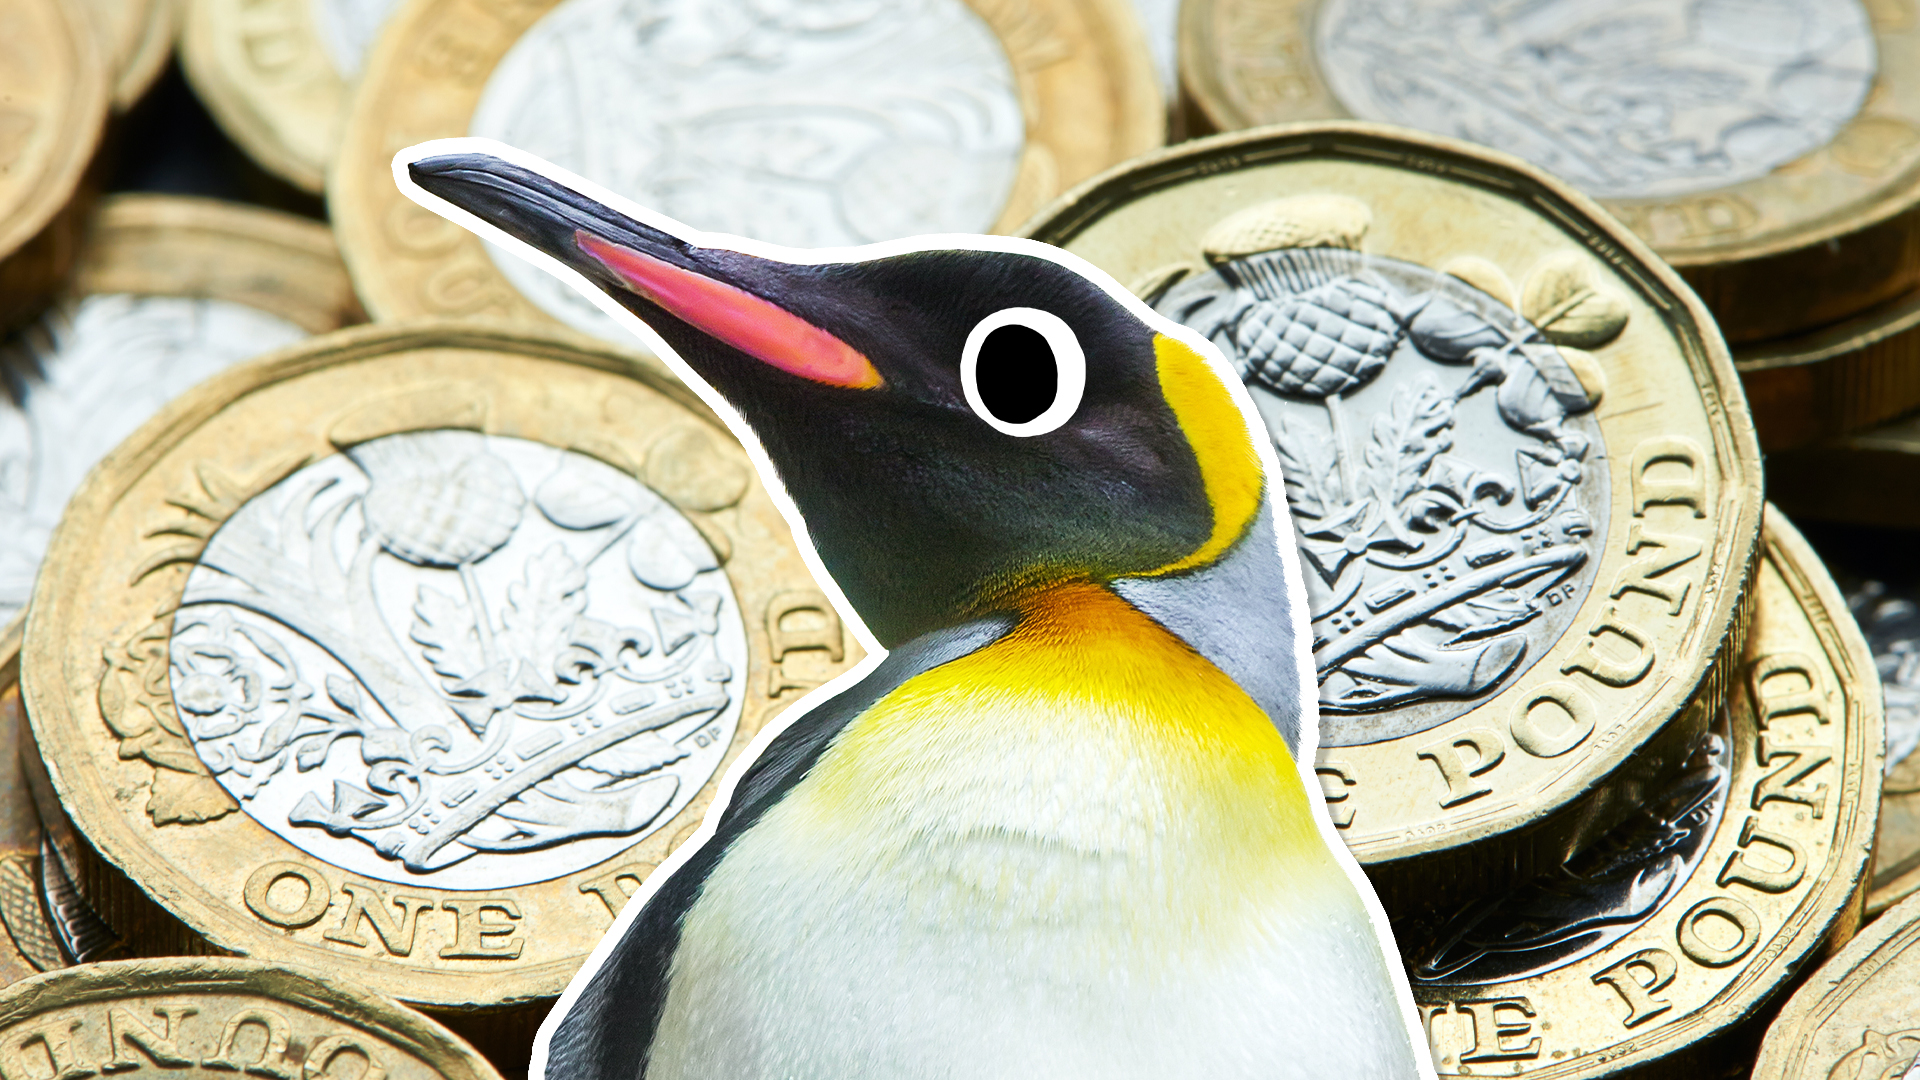 Penguin and coins